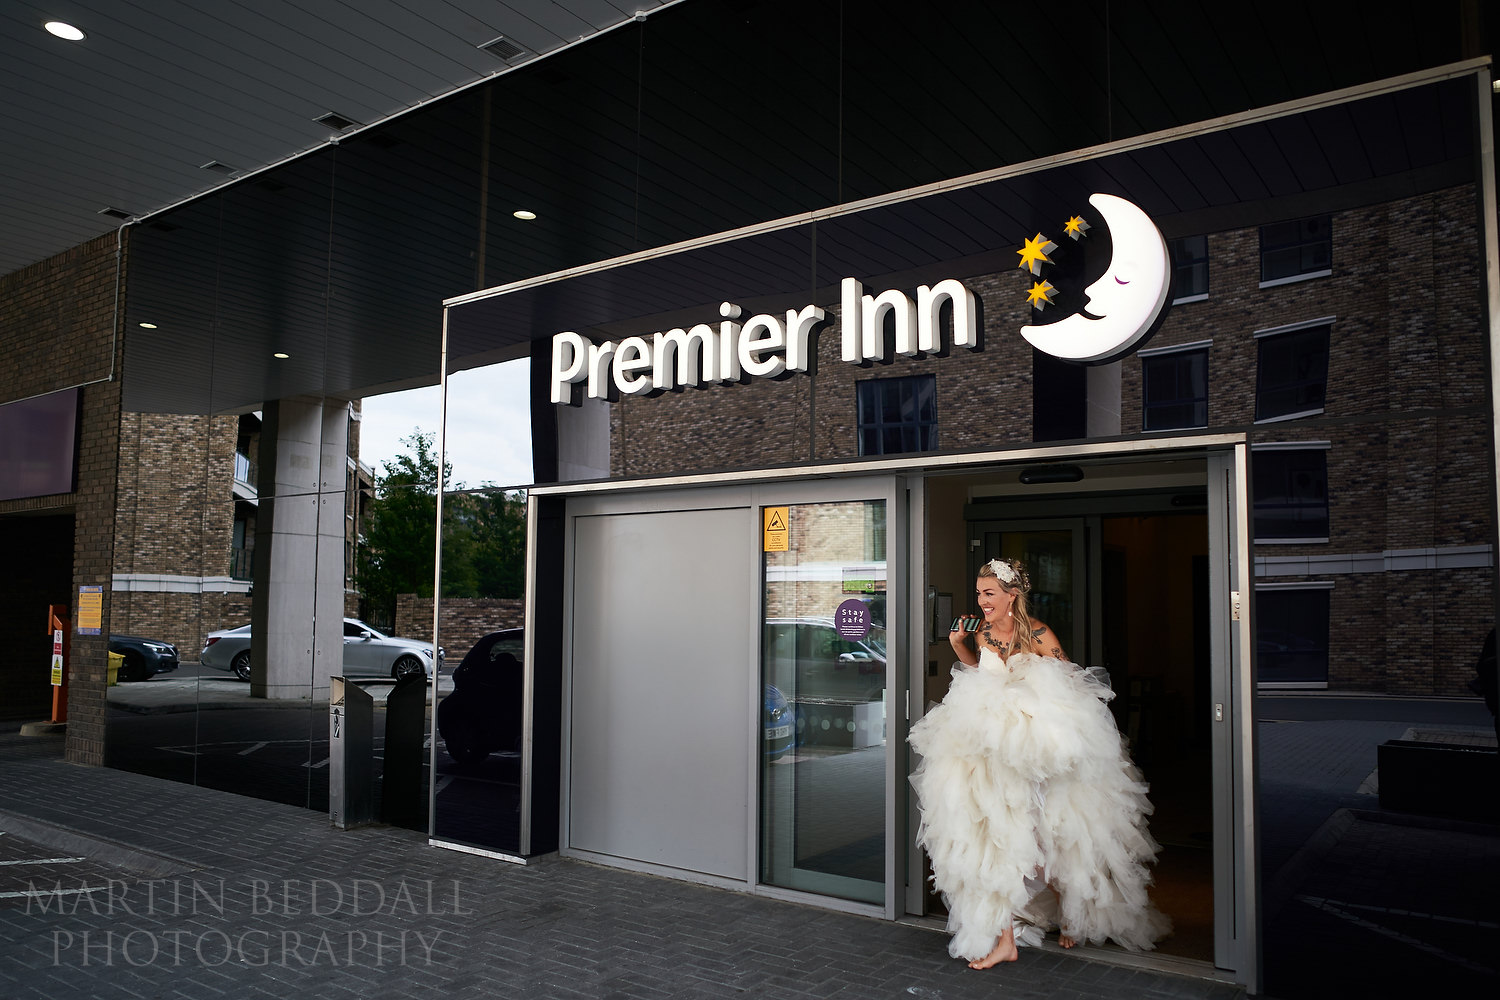 Bride leaves the Premier Inn hotel